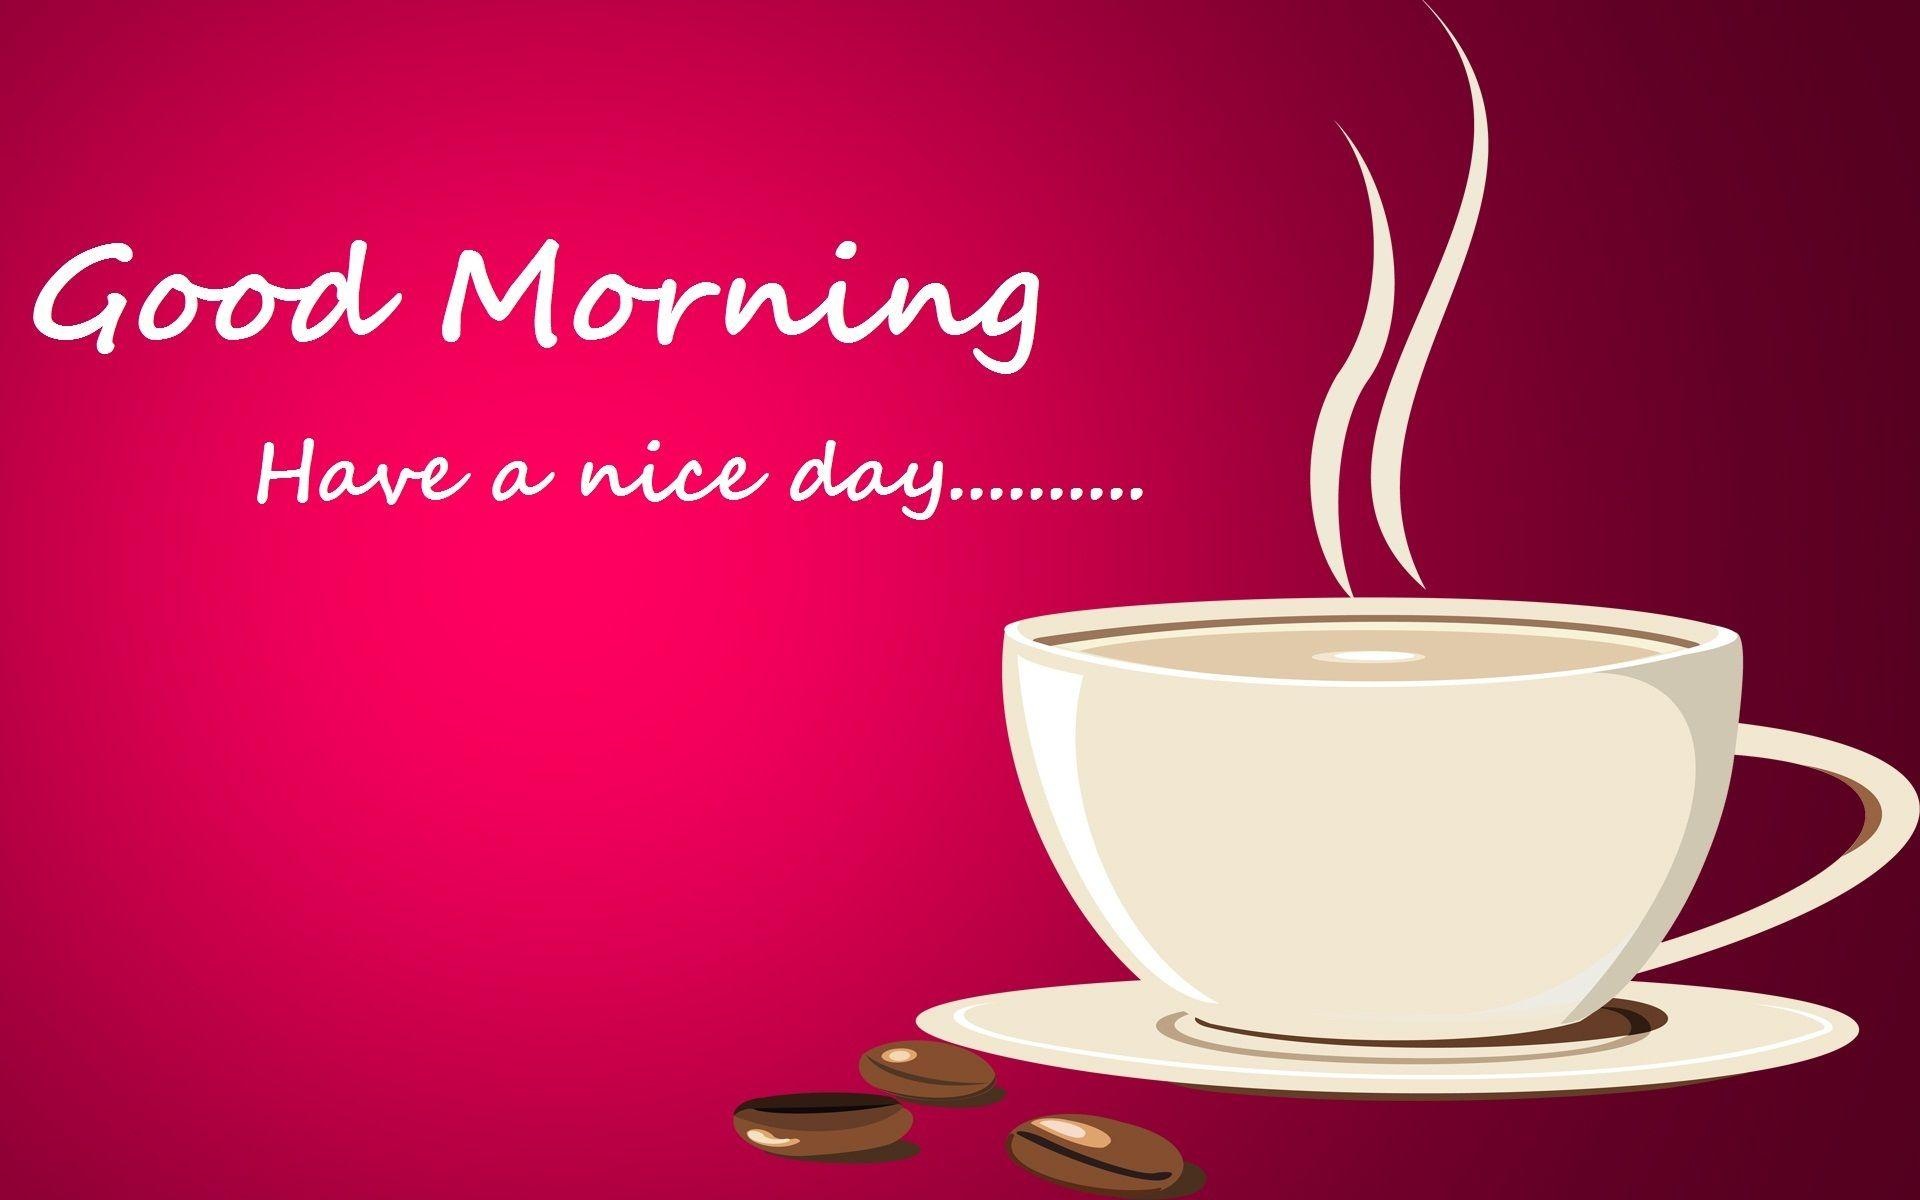 Good Morning Have A Nice Day Wallpapers 26